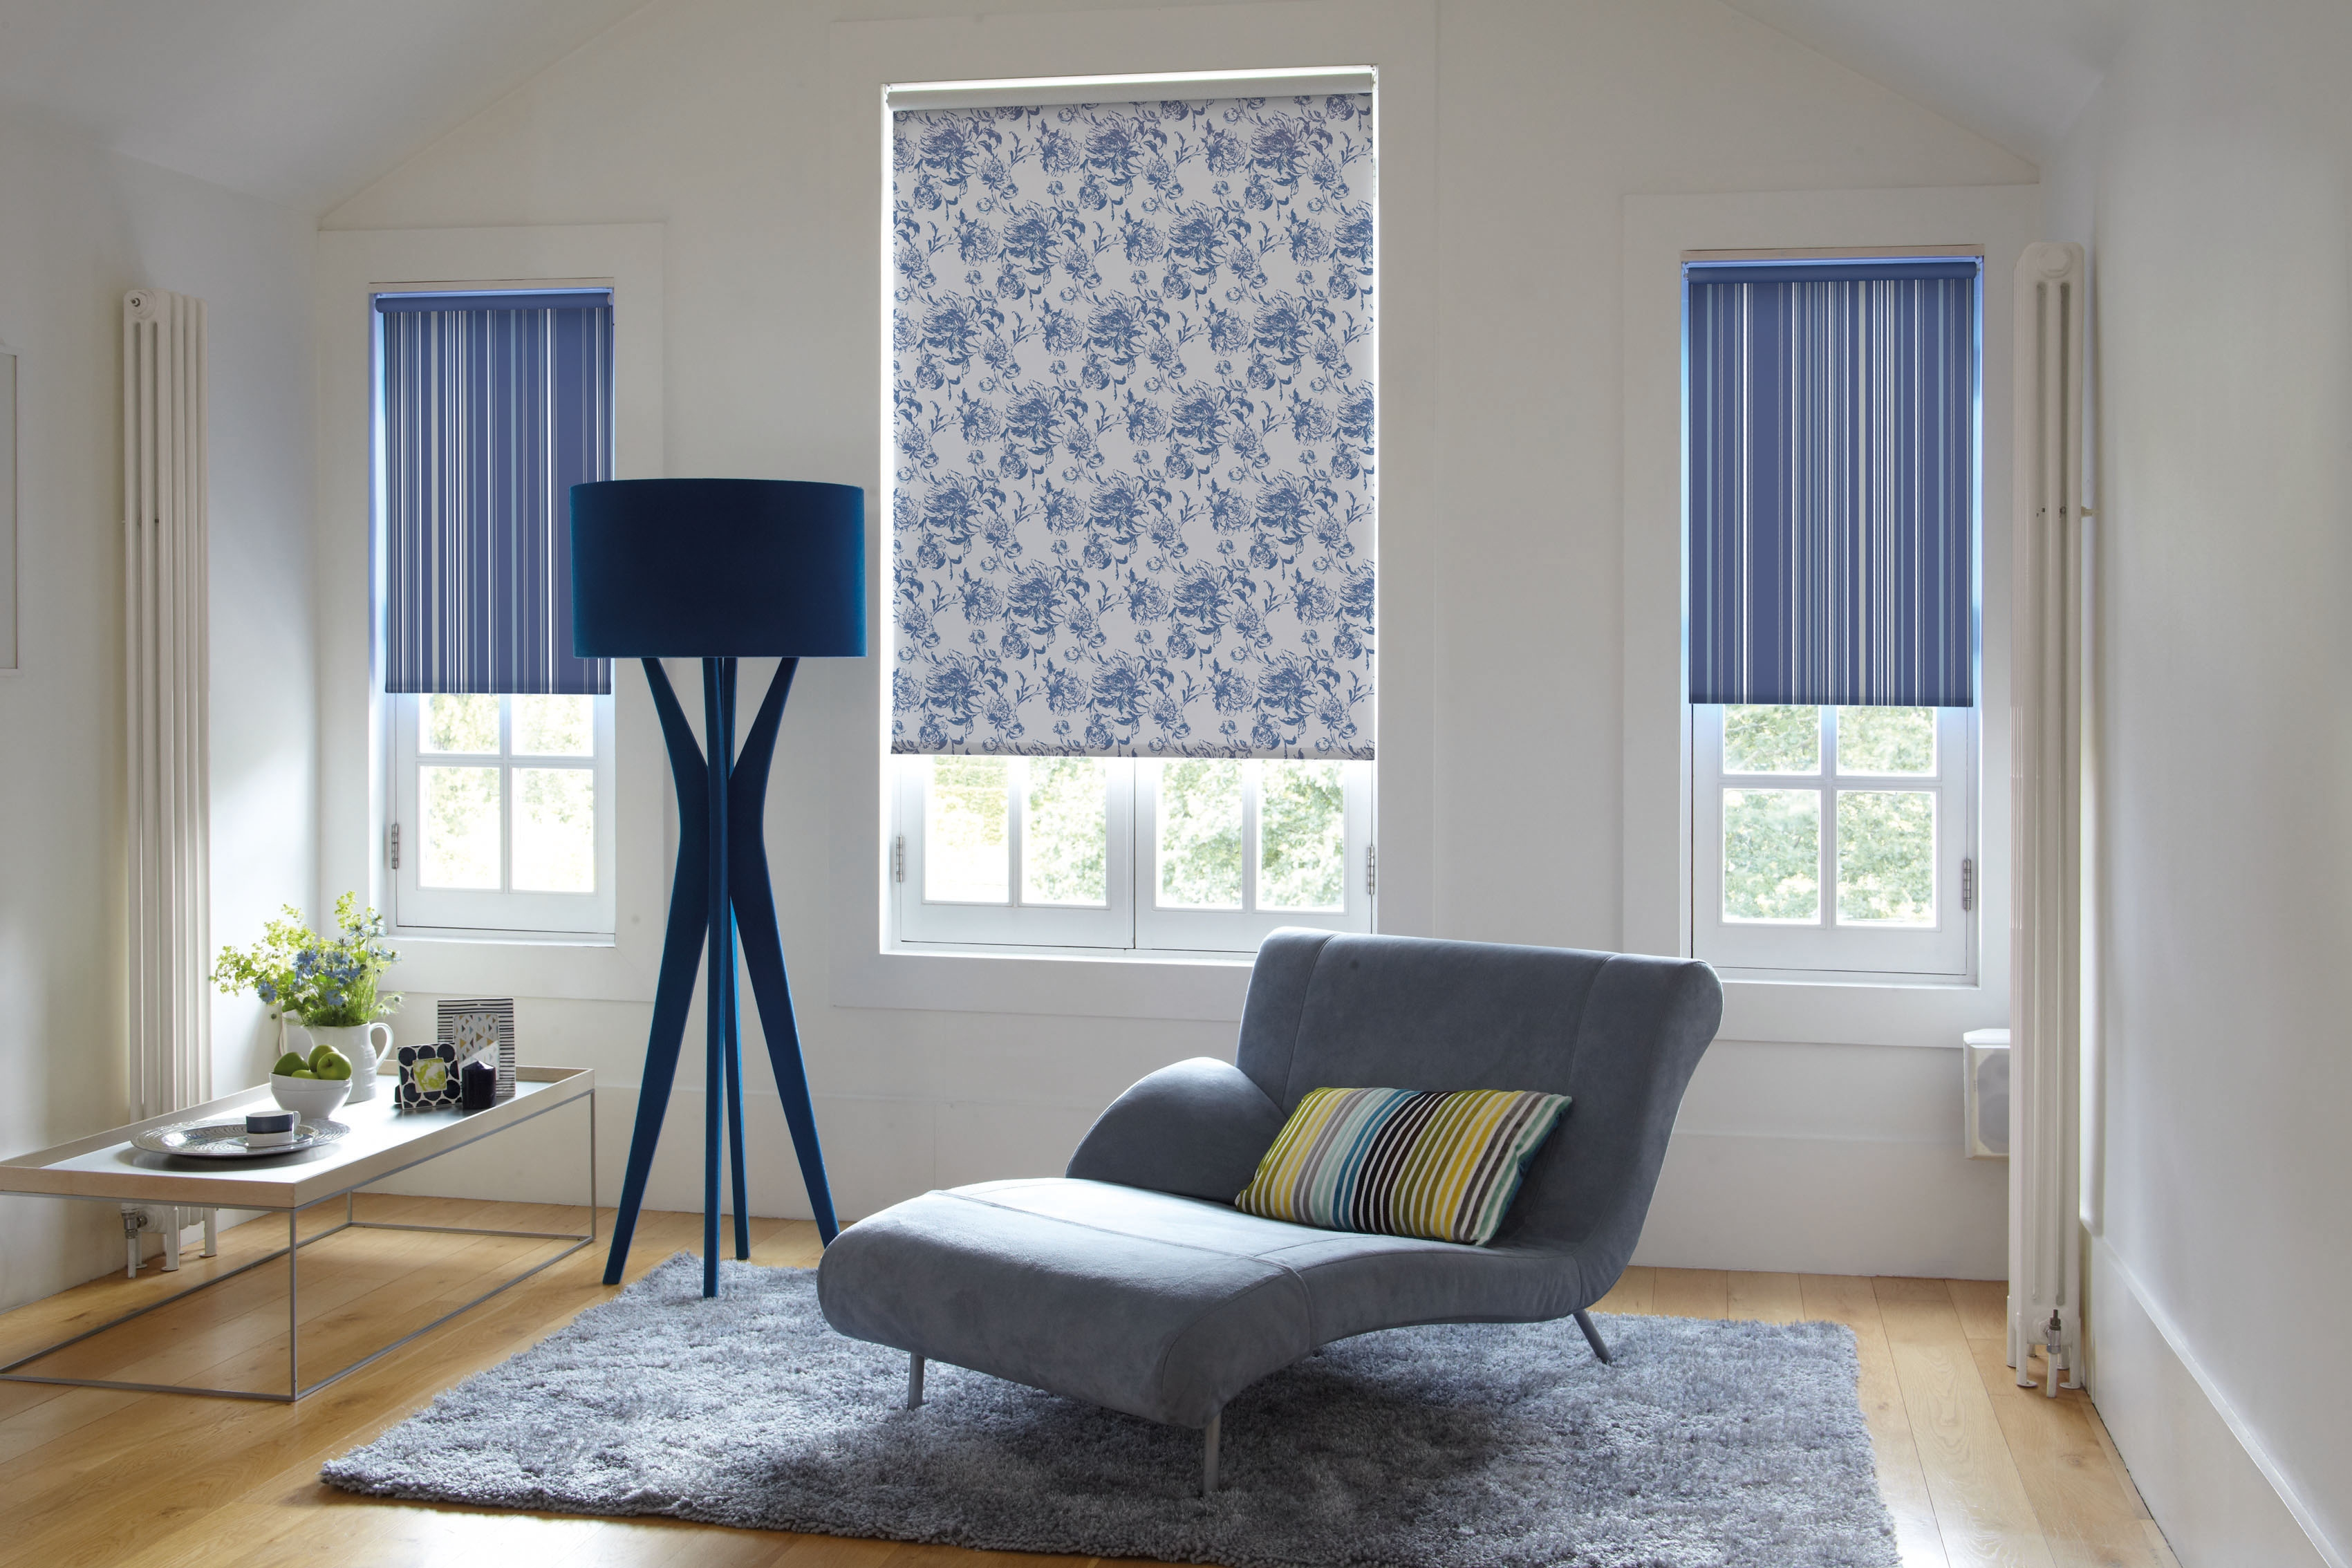 Roller Blinds Leicester D C Blinds With Regard To Blue And White Striped Roman Blinds (Image 12 of 15)